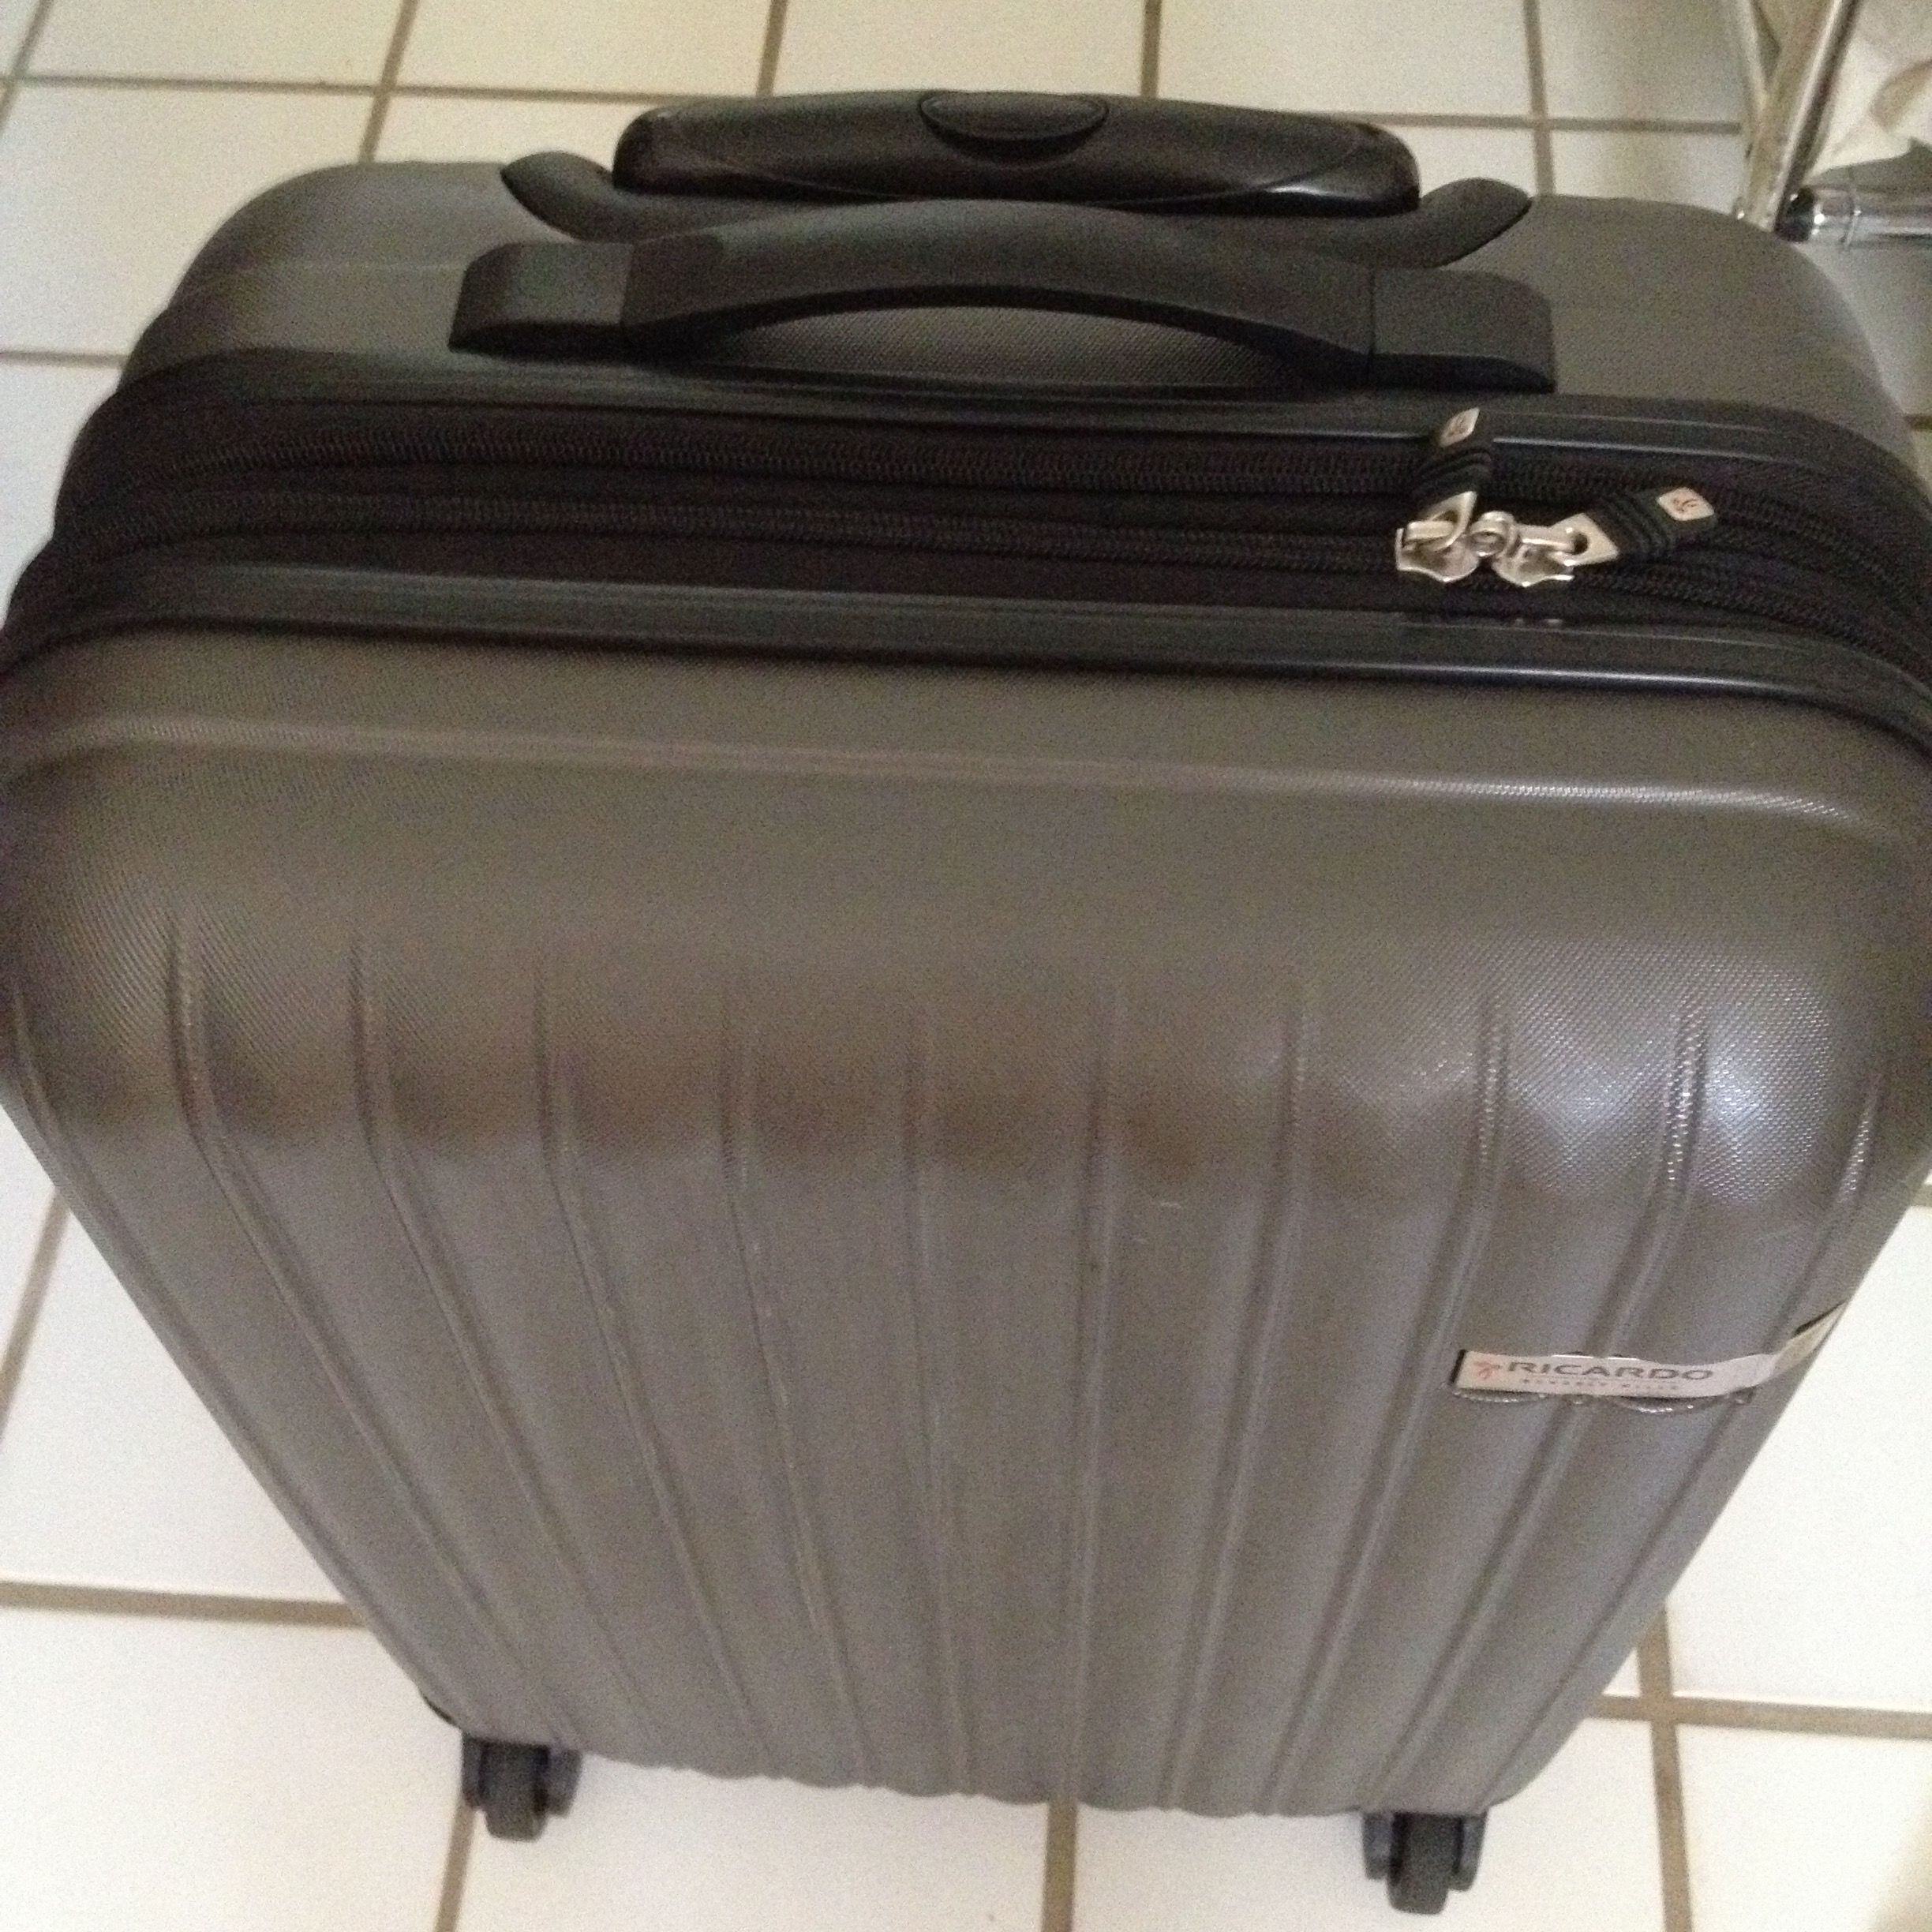 Our Costco Ricardo Expandable Carry On 7 1 Lbs Or 3 2 Kg For 20 Or 50 8 Cm Travel Light Carry On Jet Lag Tag your photos with #costco for a chance to be featured. our costco ricardo expandable carry on